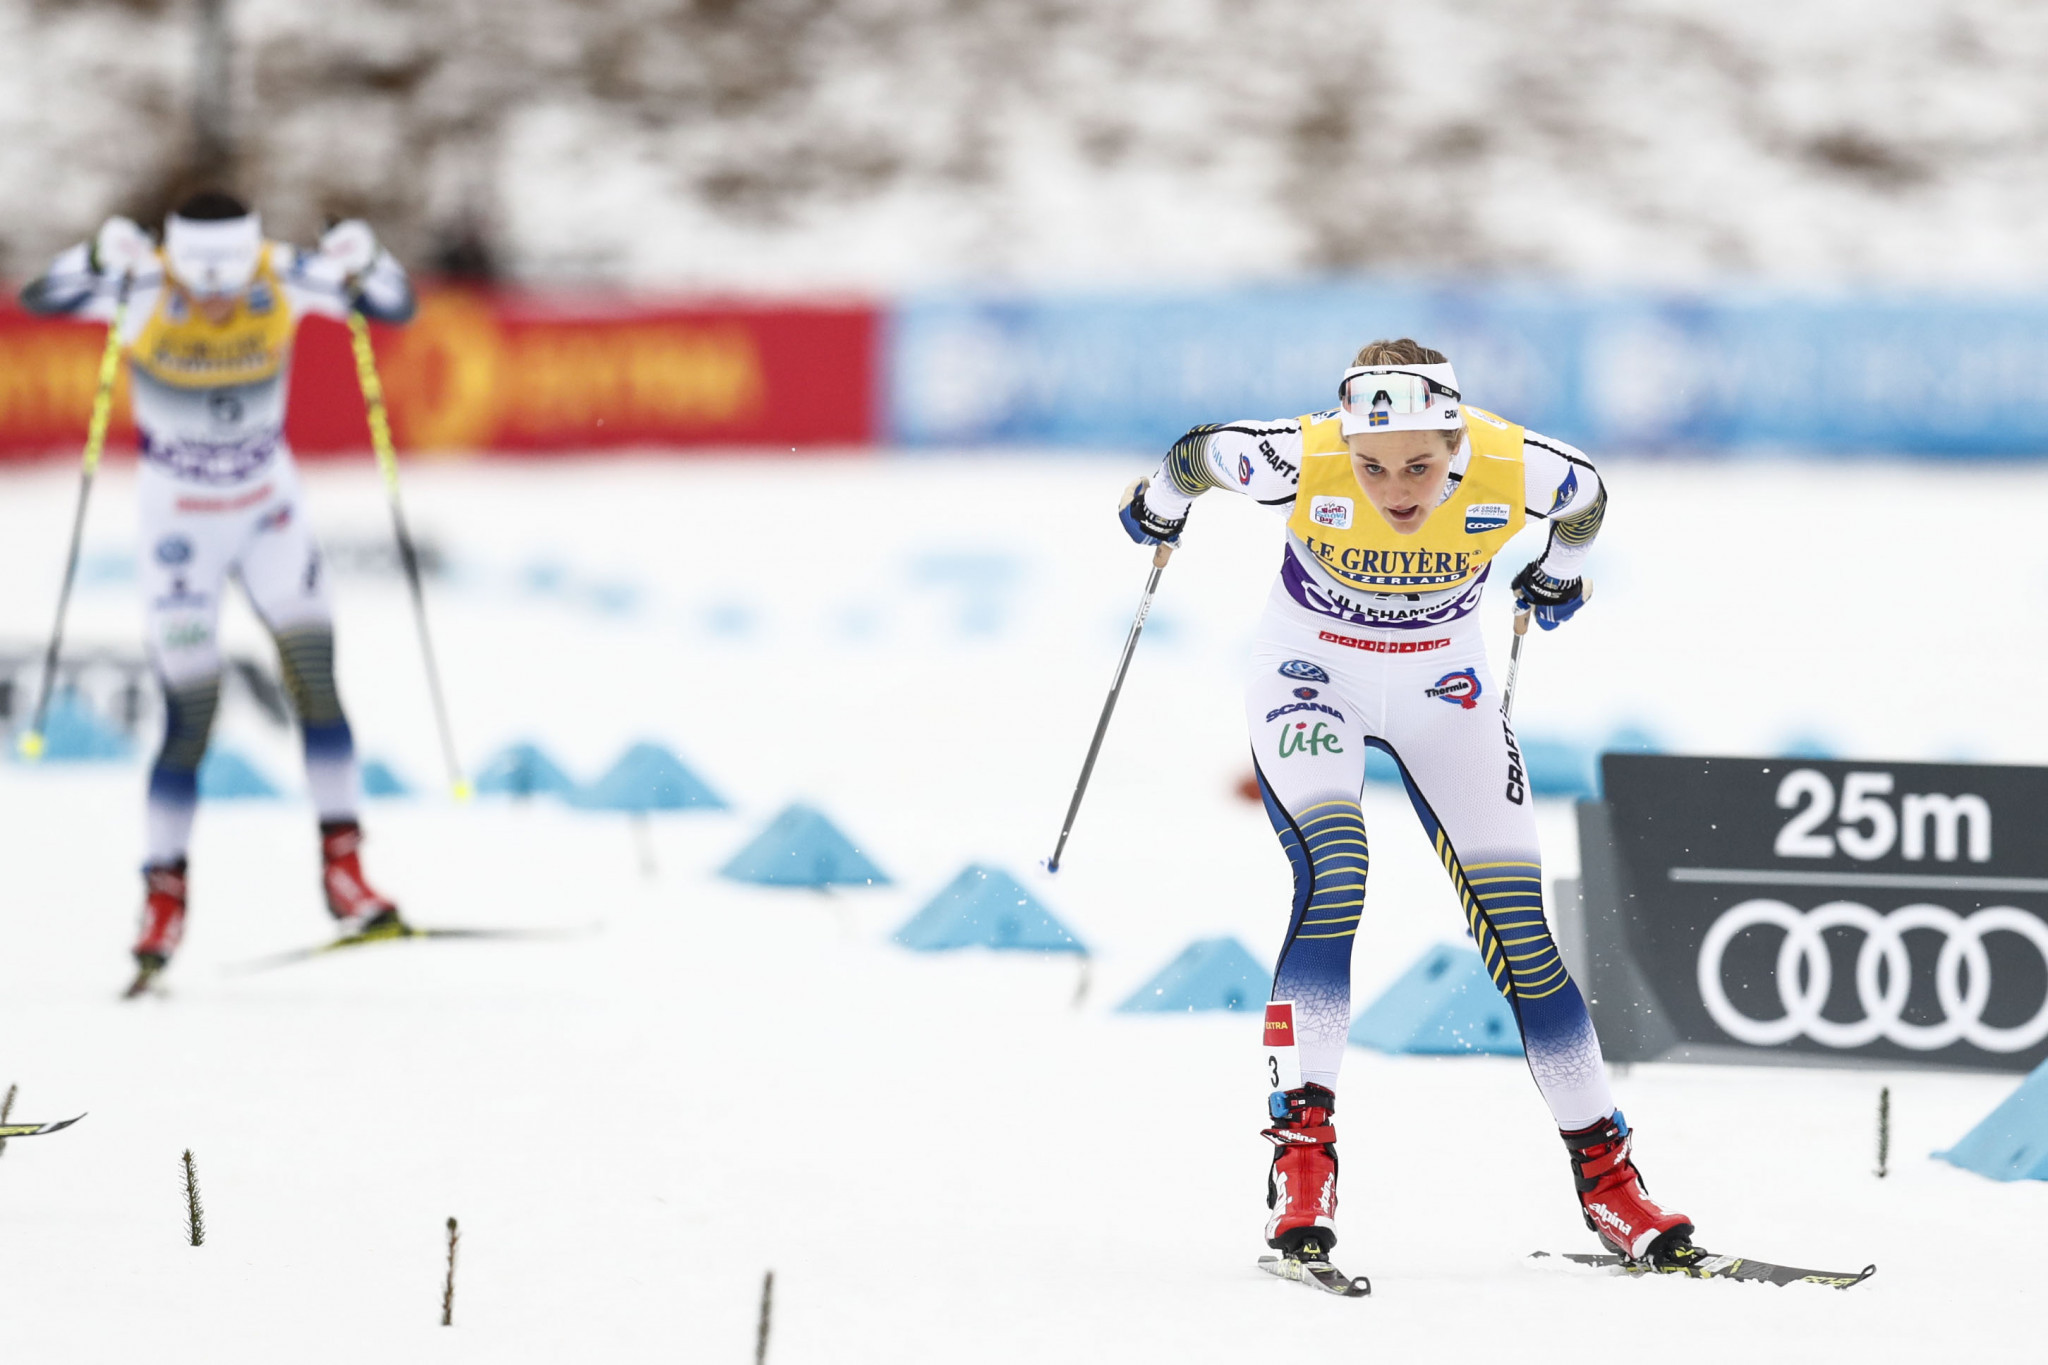 Nilsson sprints to FIS Cross-Country World Cup win in Davos